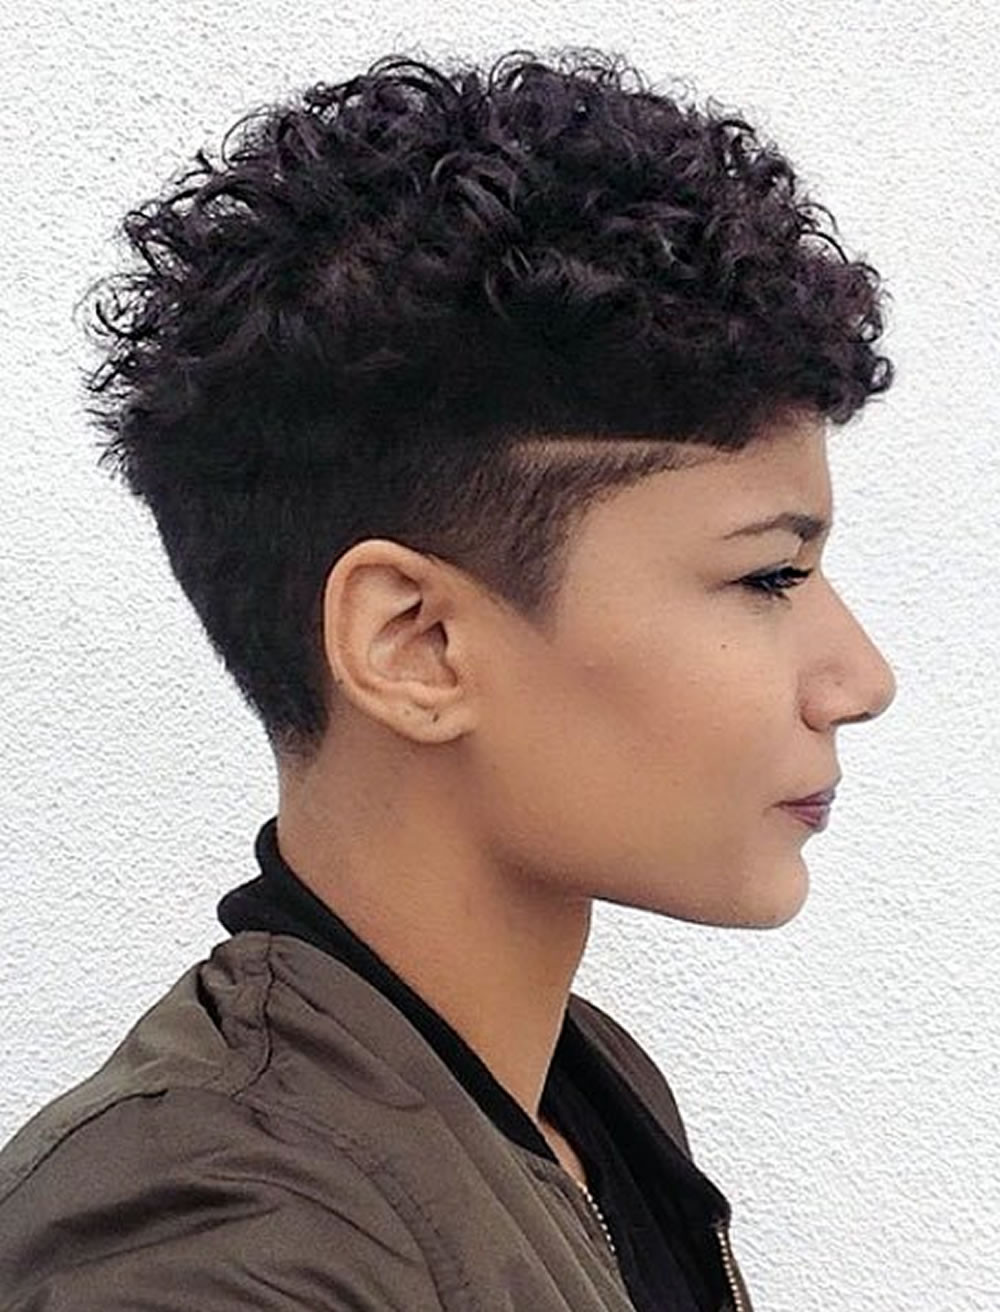 Undercut Hairstyle Black Women  Undercut Short Hairstyles for Black Women & Which e